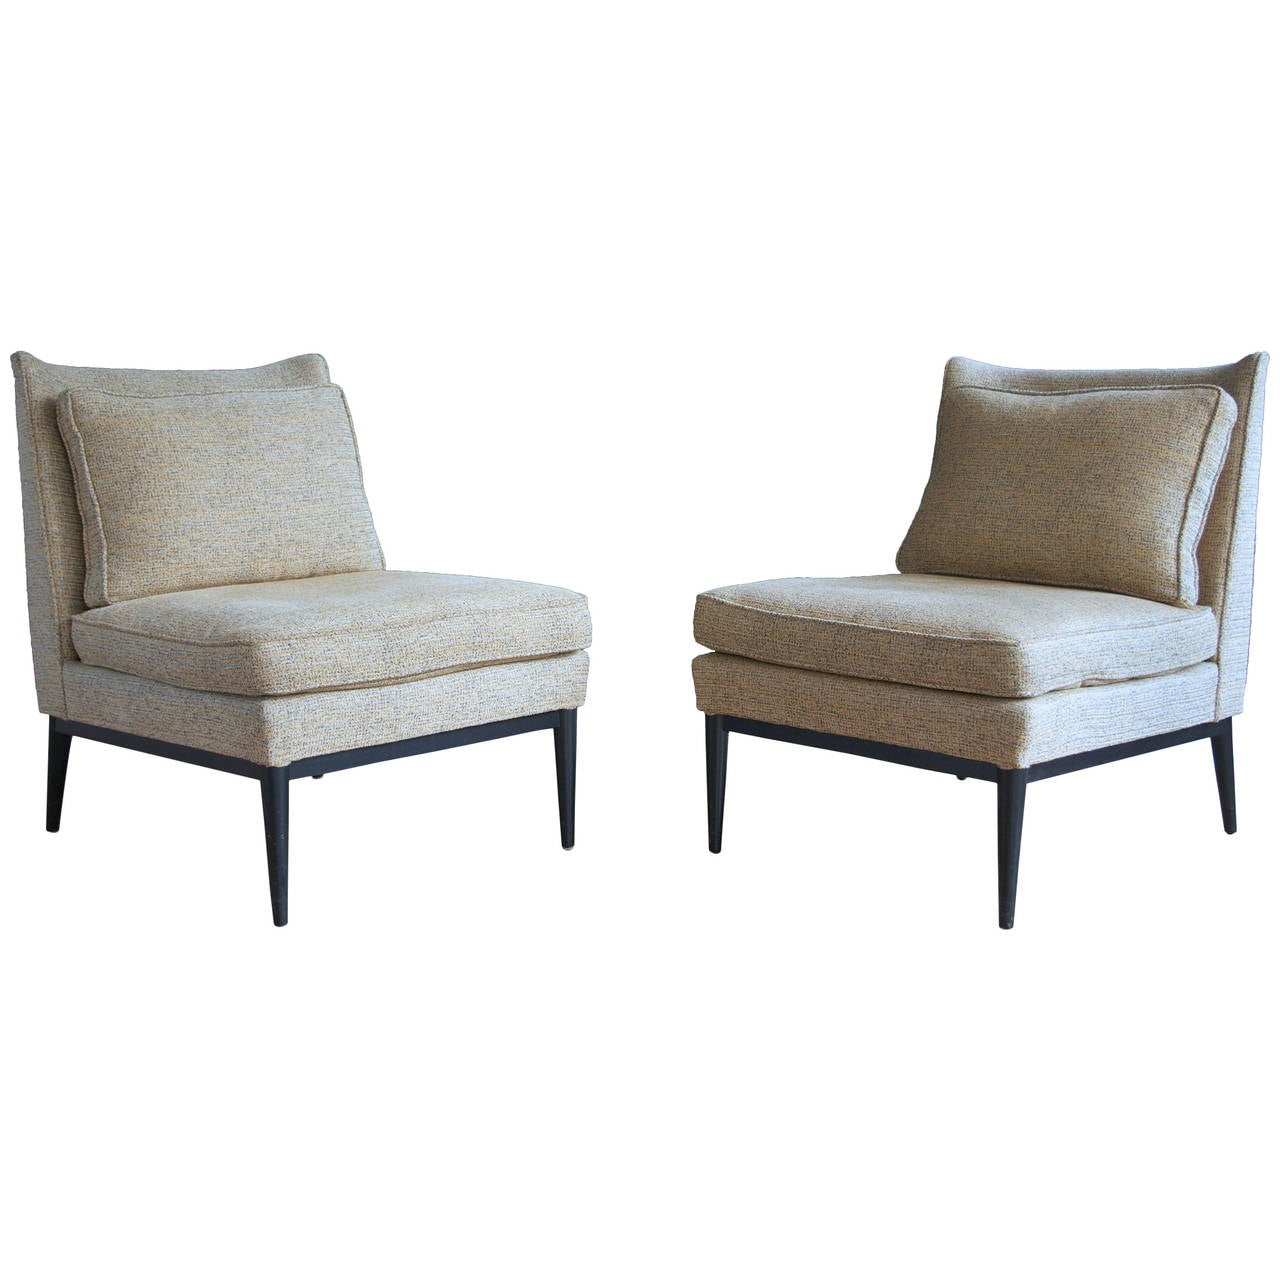 Pair Of Slipper Chairs By Paul Mccobb For Calvin